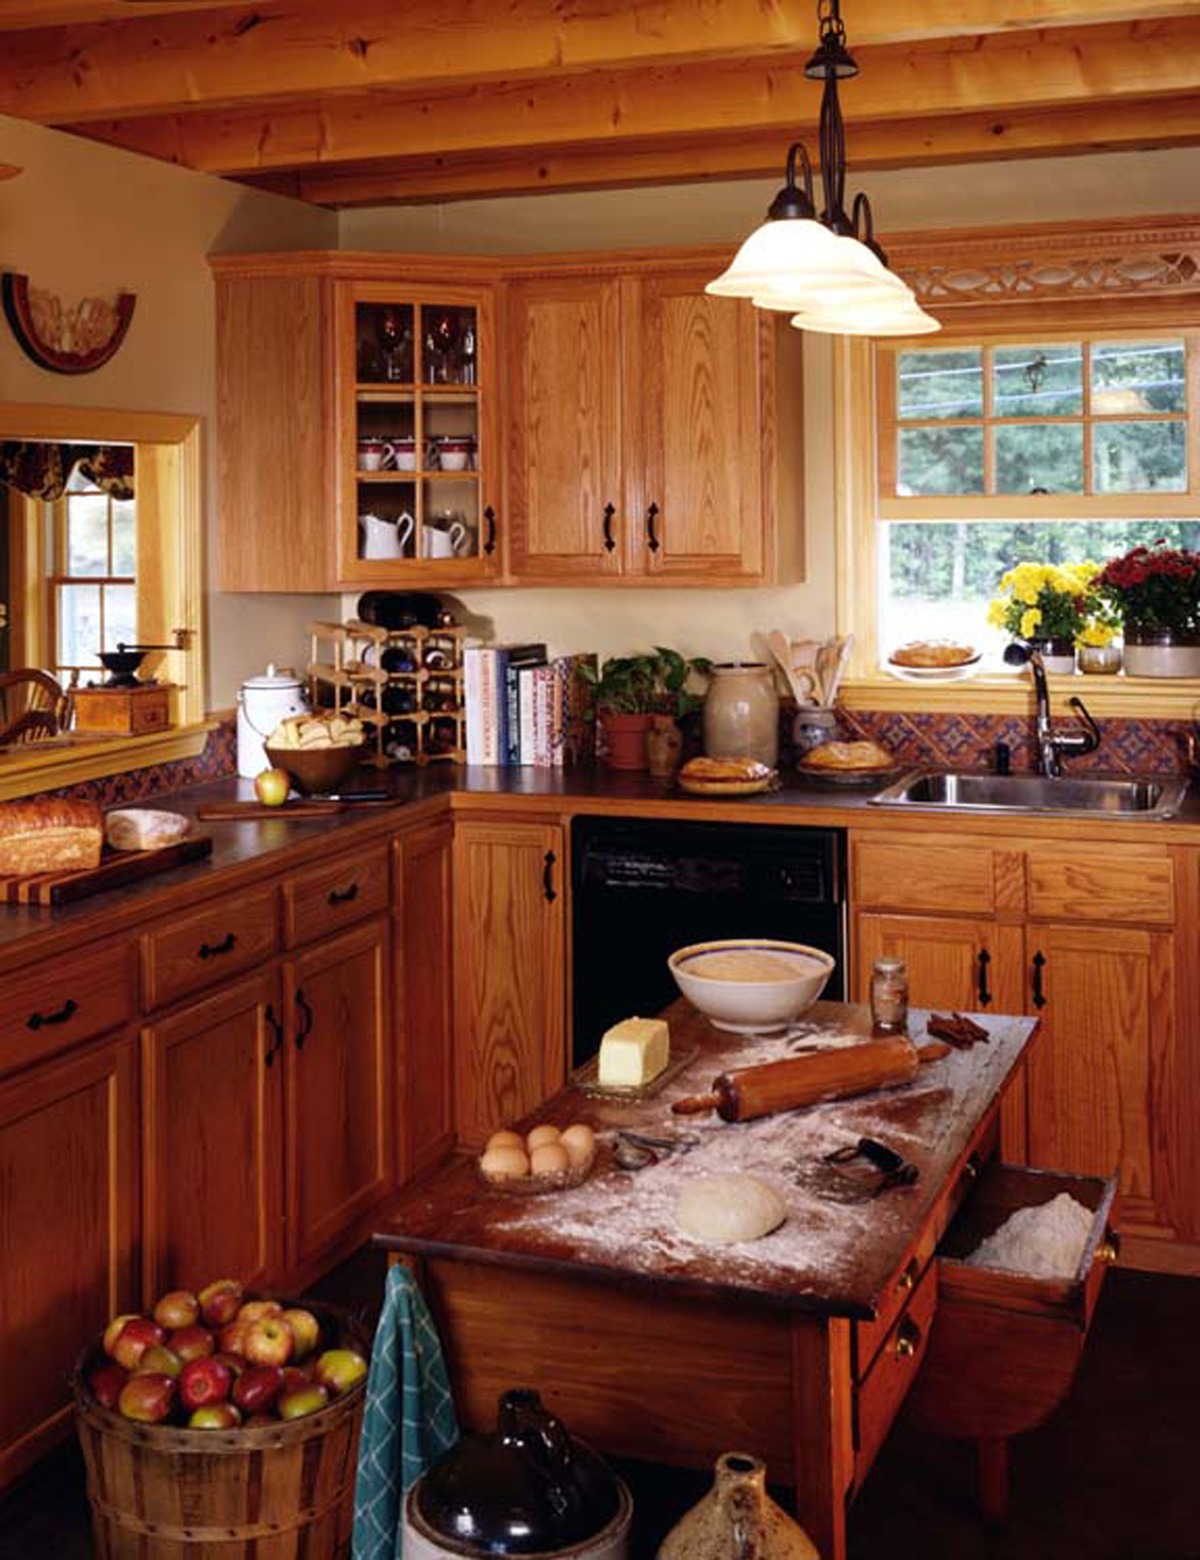 Koeppel_Classic_Country_Charm - Koeppel-Kitchen-.jpg